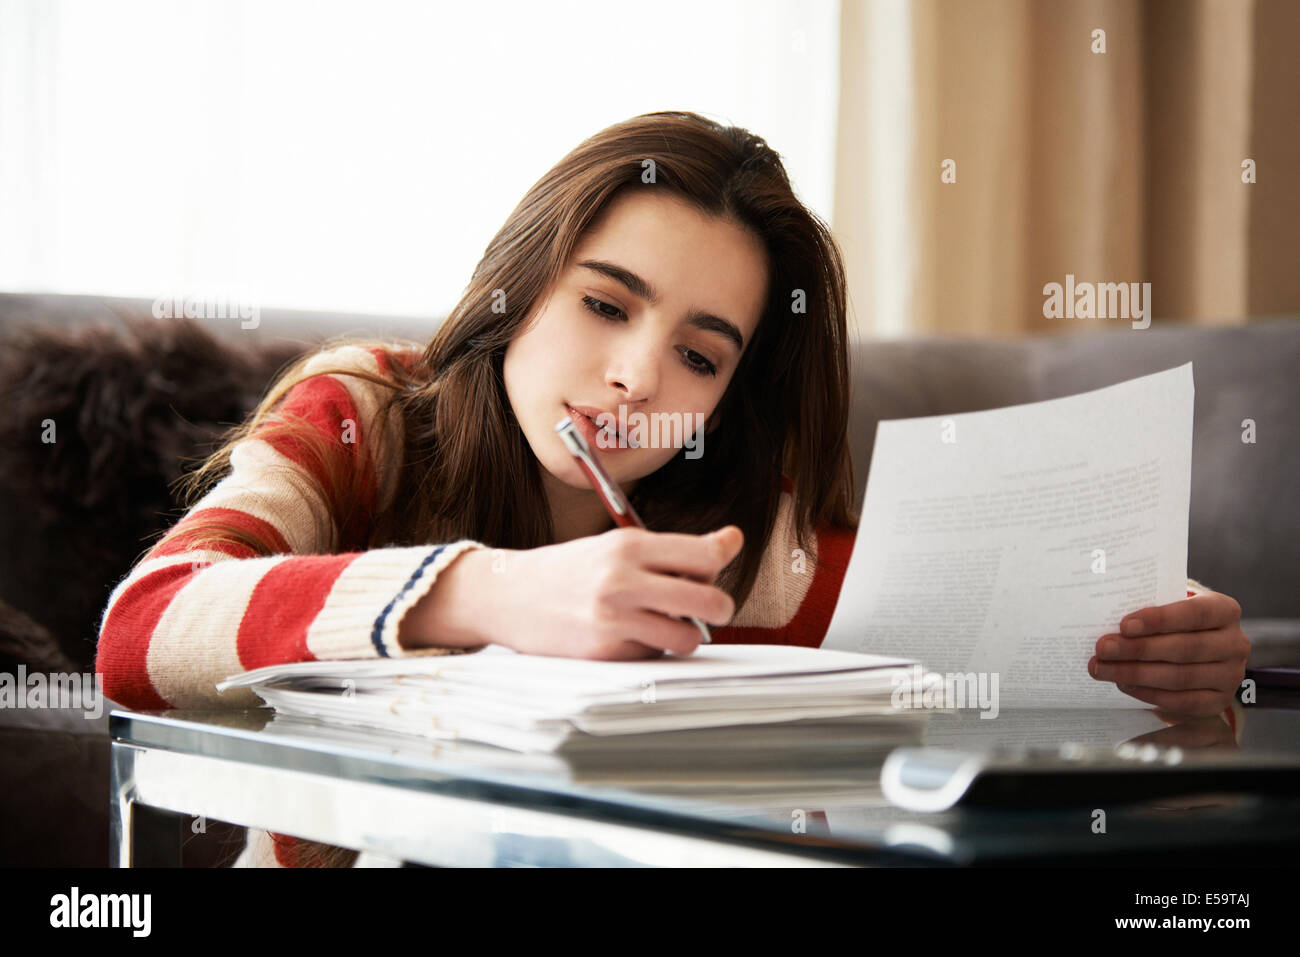 Girl doing homework at coffee table - Stock Image